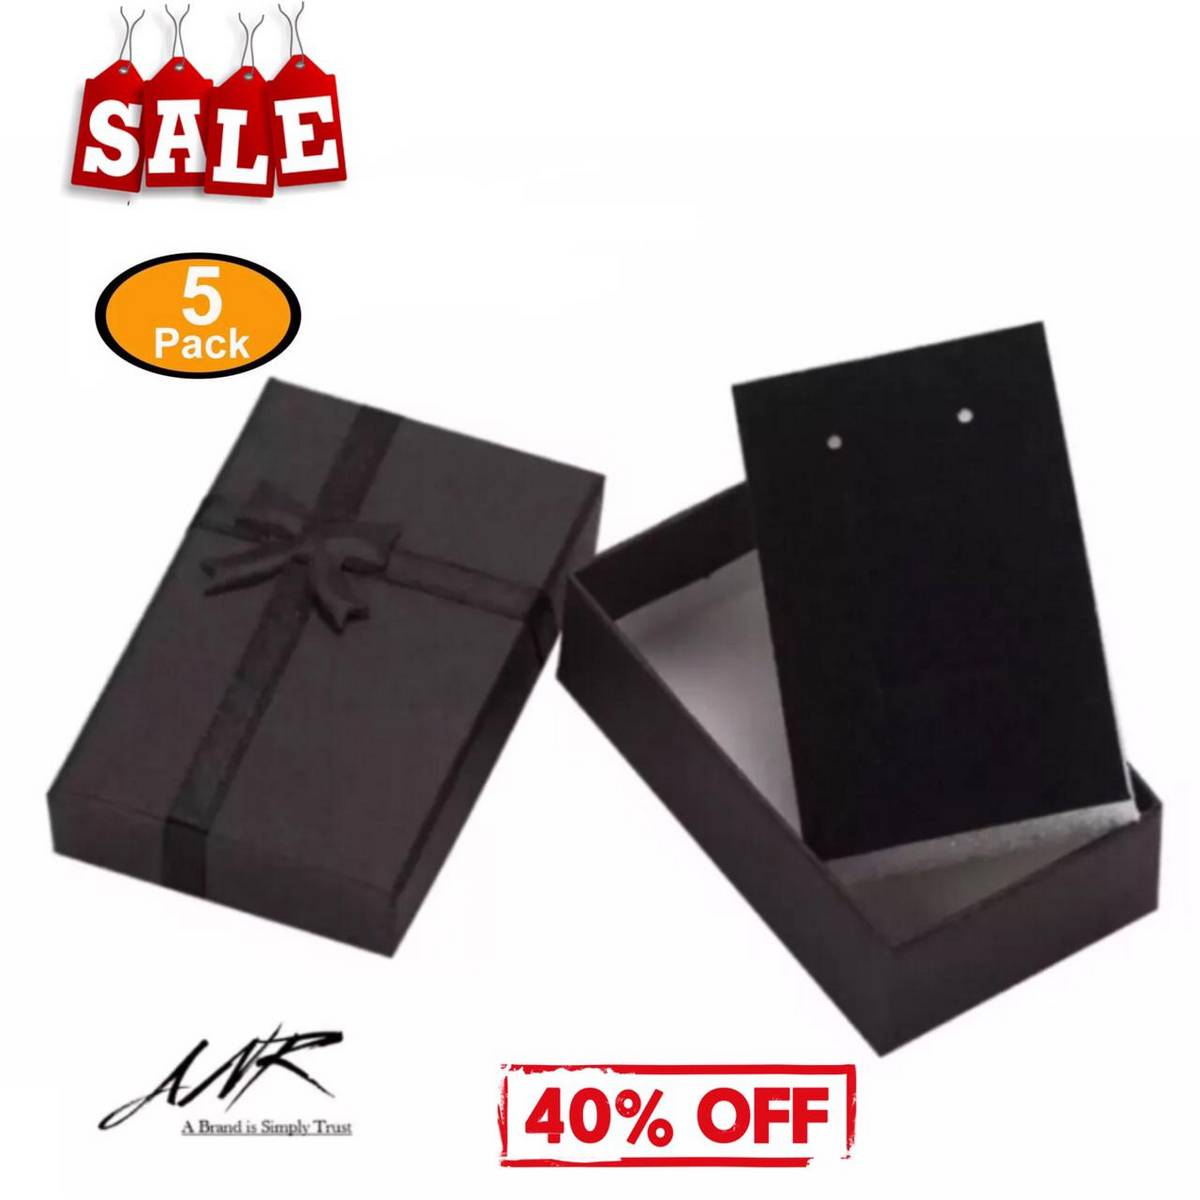 ANR Pack of 5 Jewelry Box 8x5cm Black Necklace Box for Ring Gift Box Paper Jewellery Box Packaging Bracelet Earring Display with Sponge